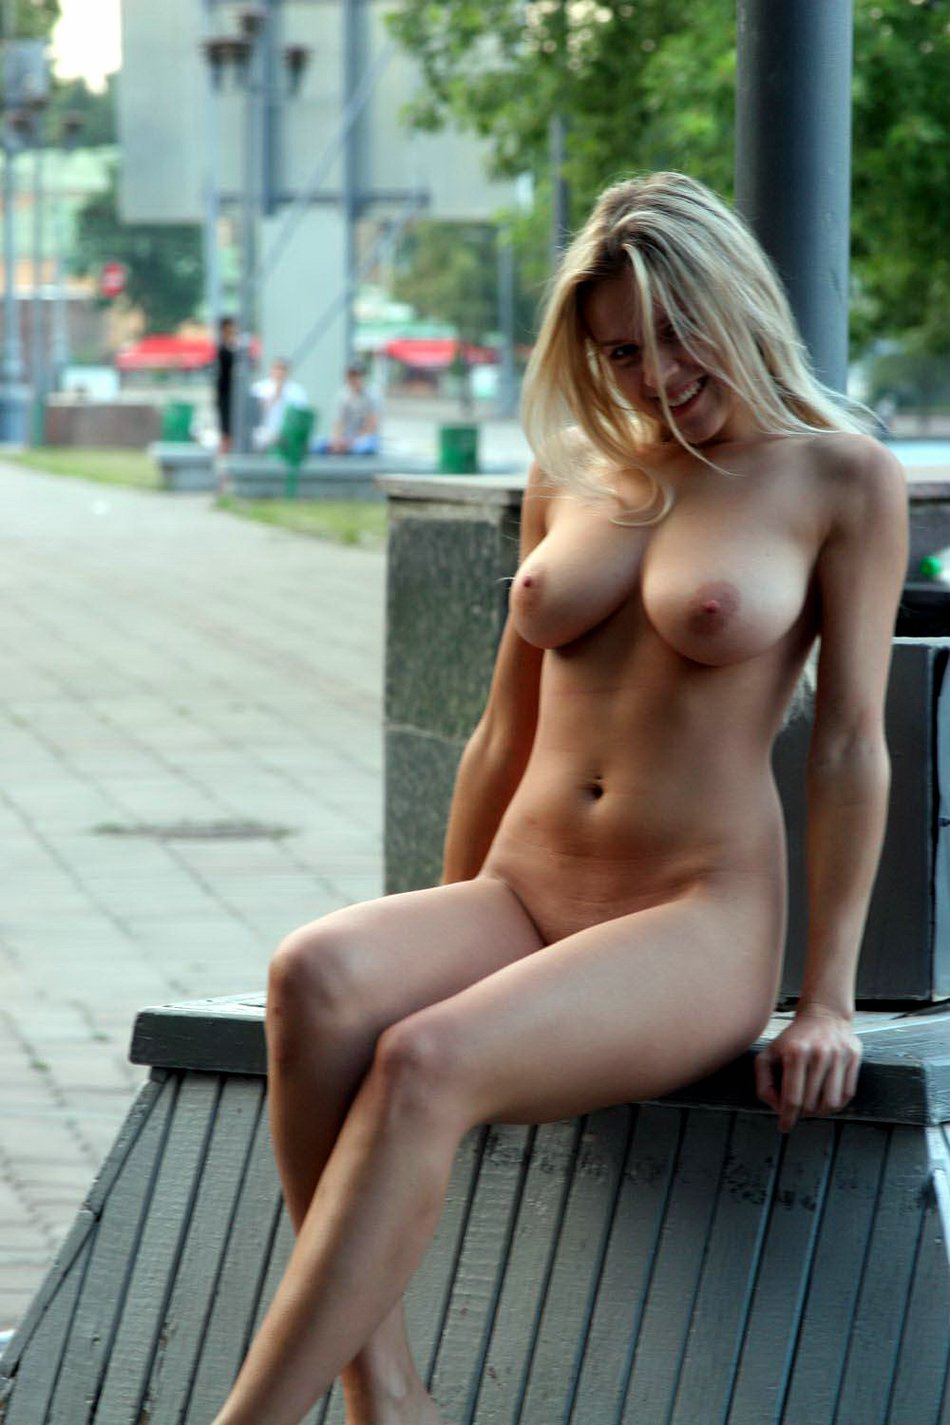 Super Hot Mom With Big Boobs Flashing Naked In Public